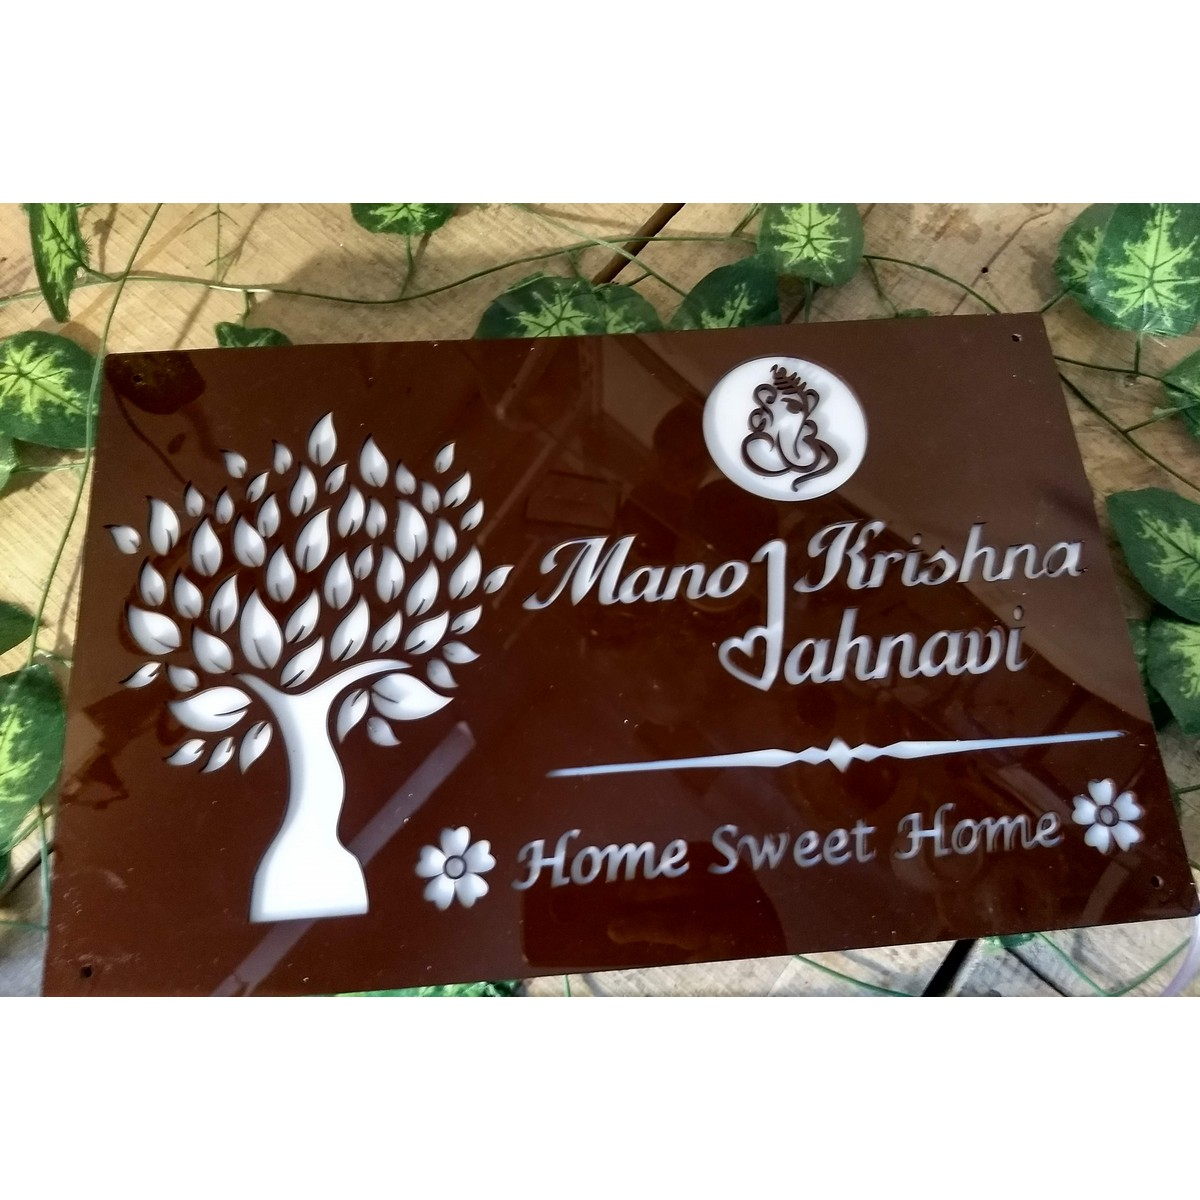 Light House Name Plate  Maroon Brown Sheet  Warm White Lights  Light House Name Plate  brown sheet  warm white lights 3